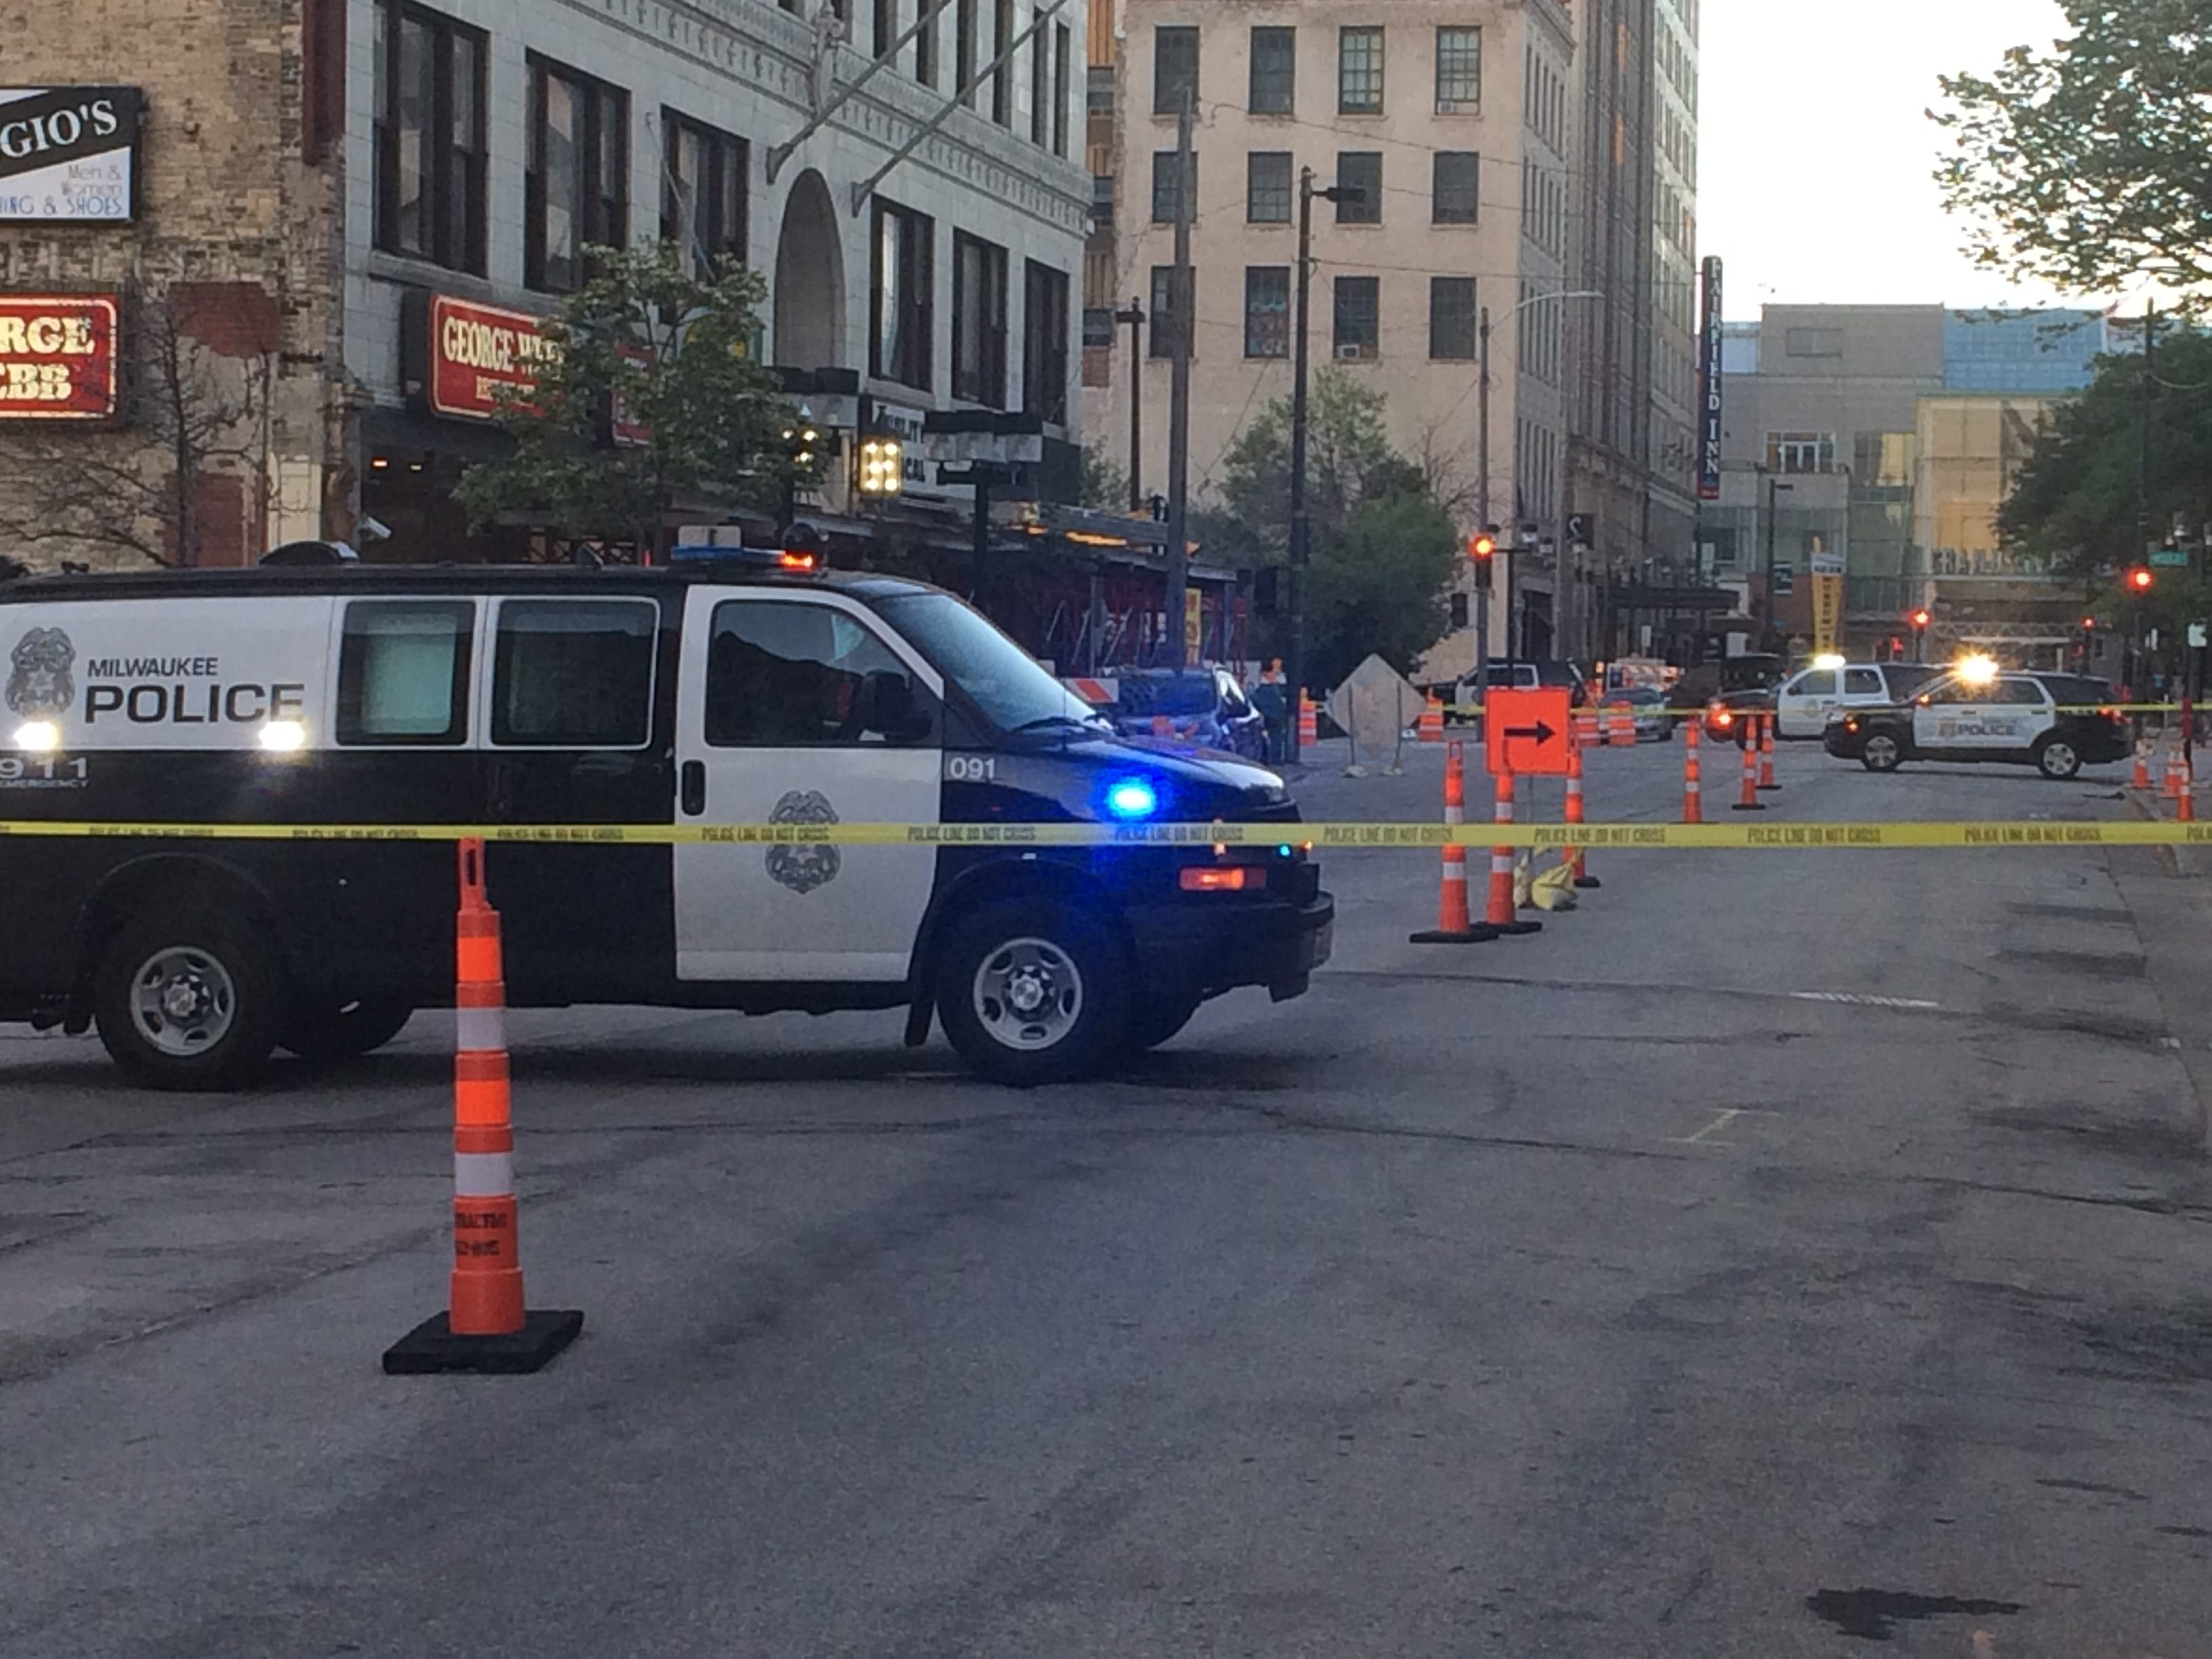 Milwaukee police investigating homicide on North Old World 3rd Street downtown | Milwaukee Journal Sentinel